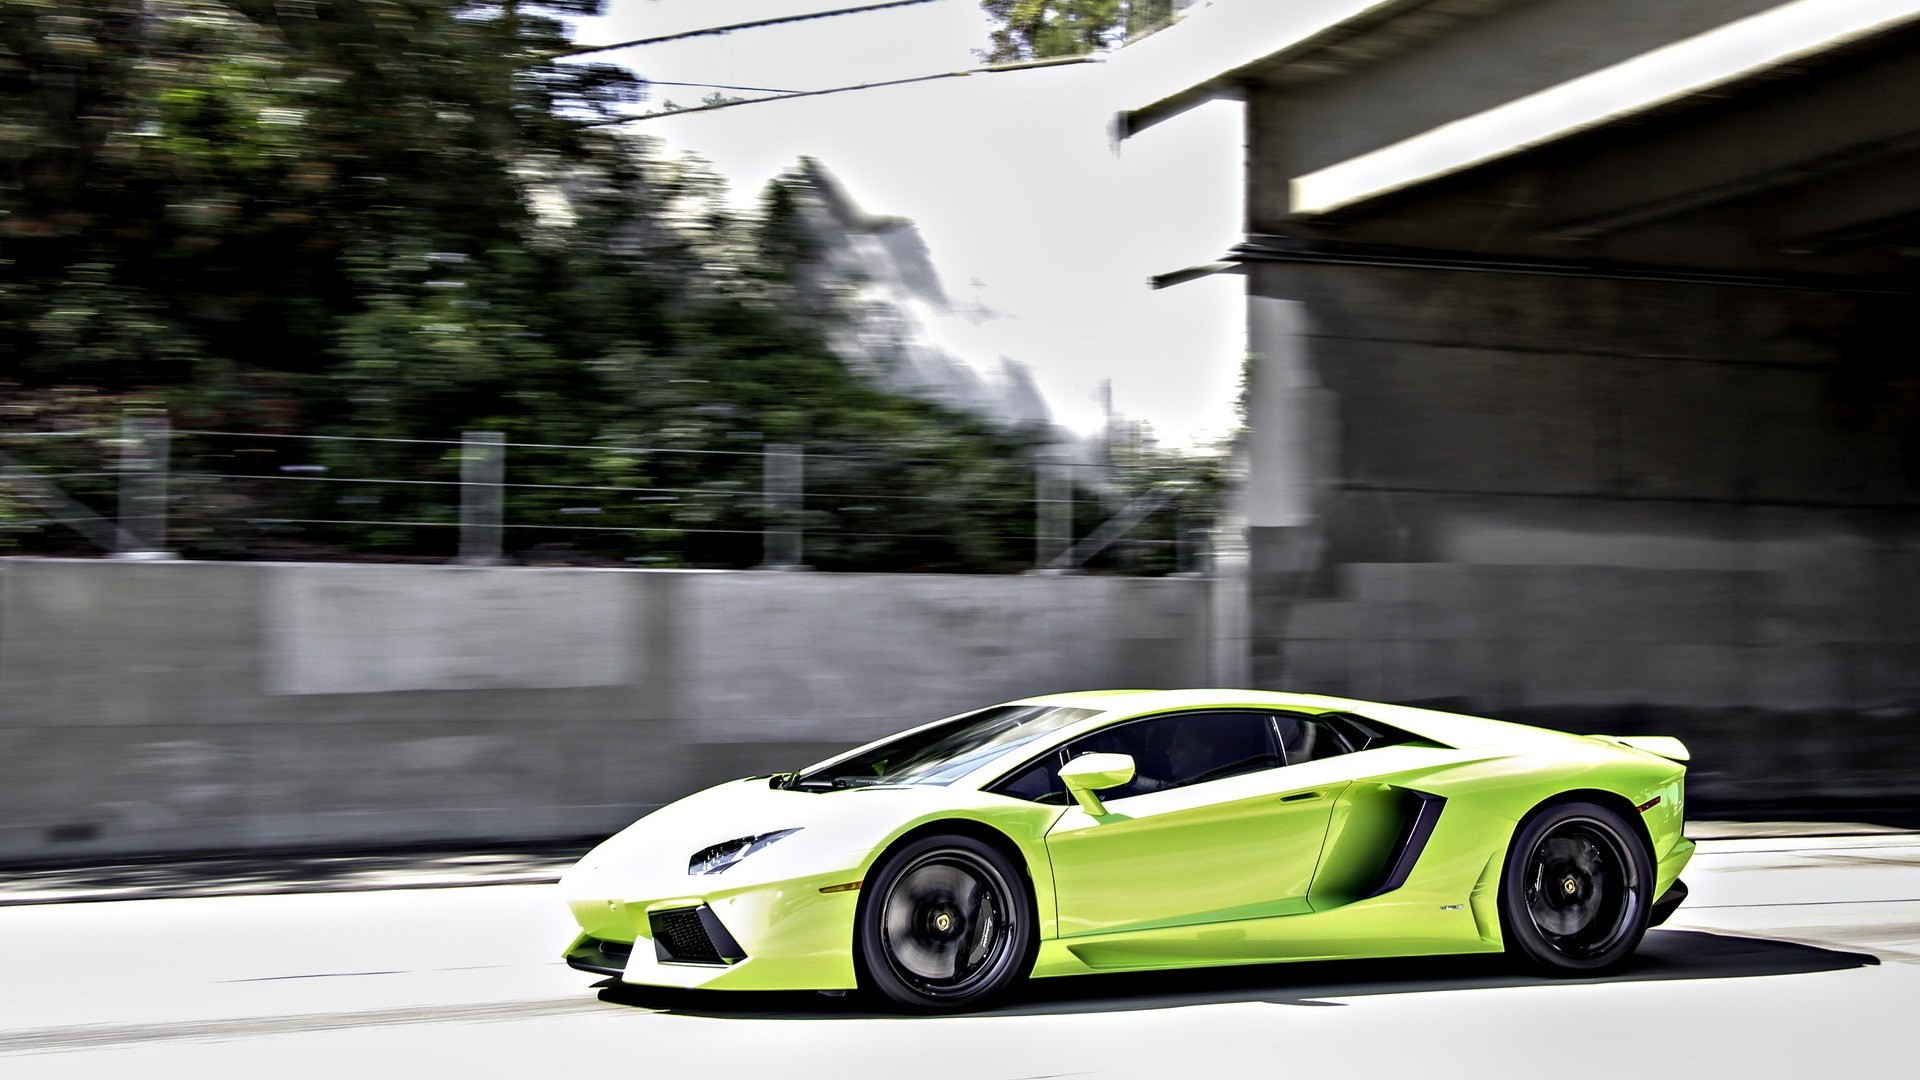 Lamborghini Aventador LP700-4 Speed HD Wallpaper